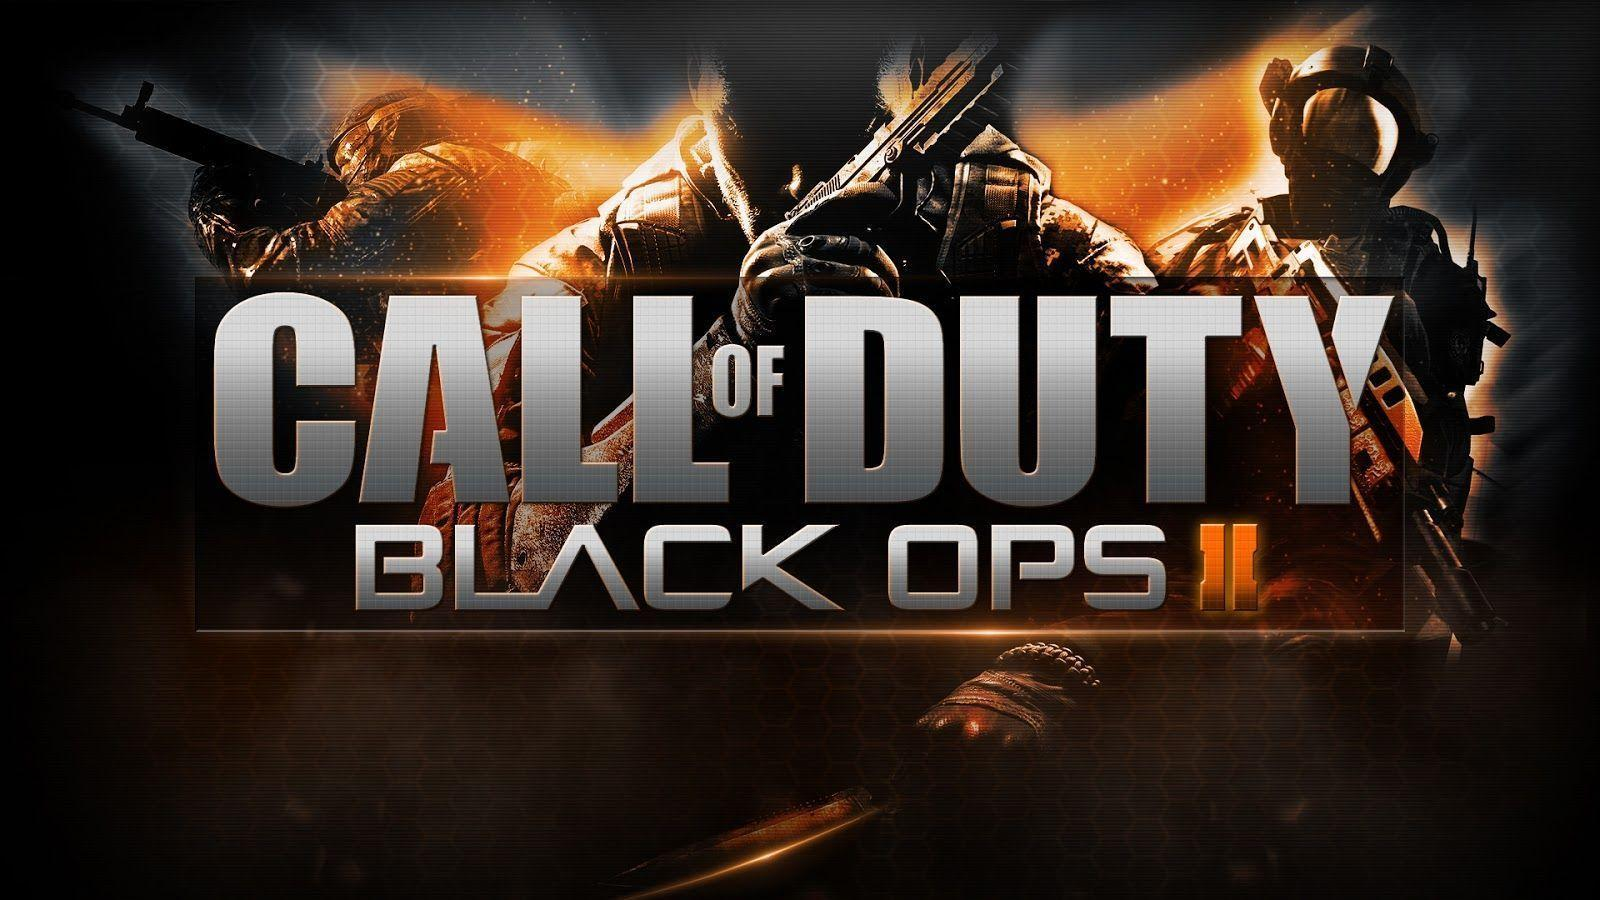 Black Ops 2 Wallpapers Hd Wallpapers